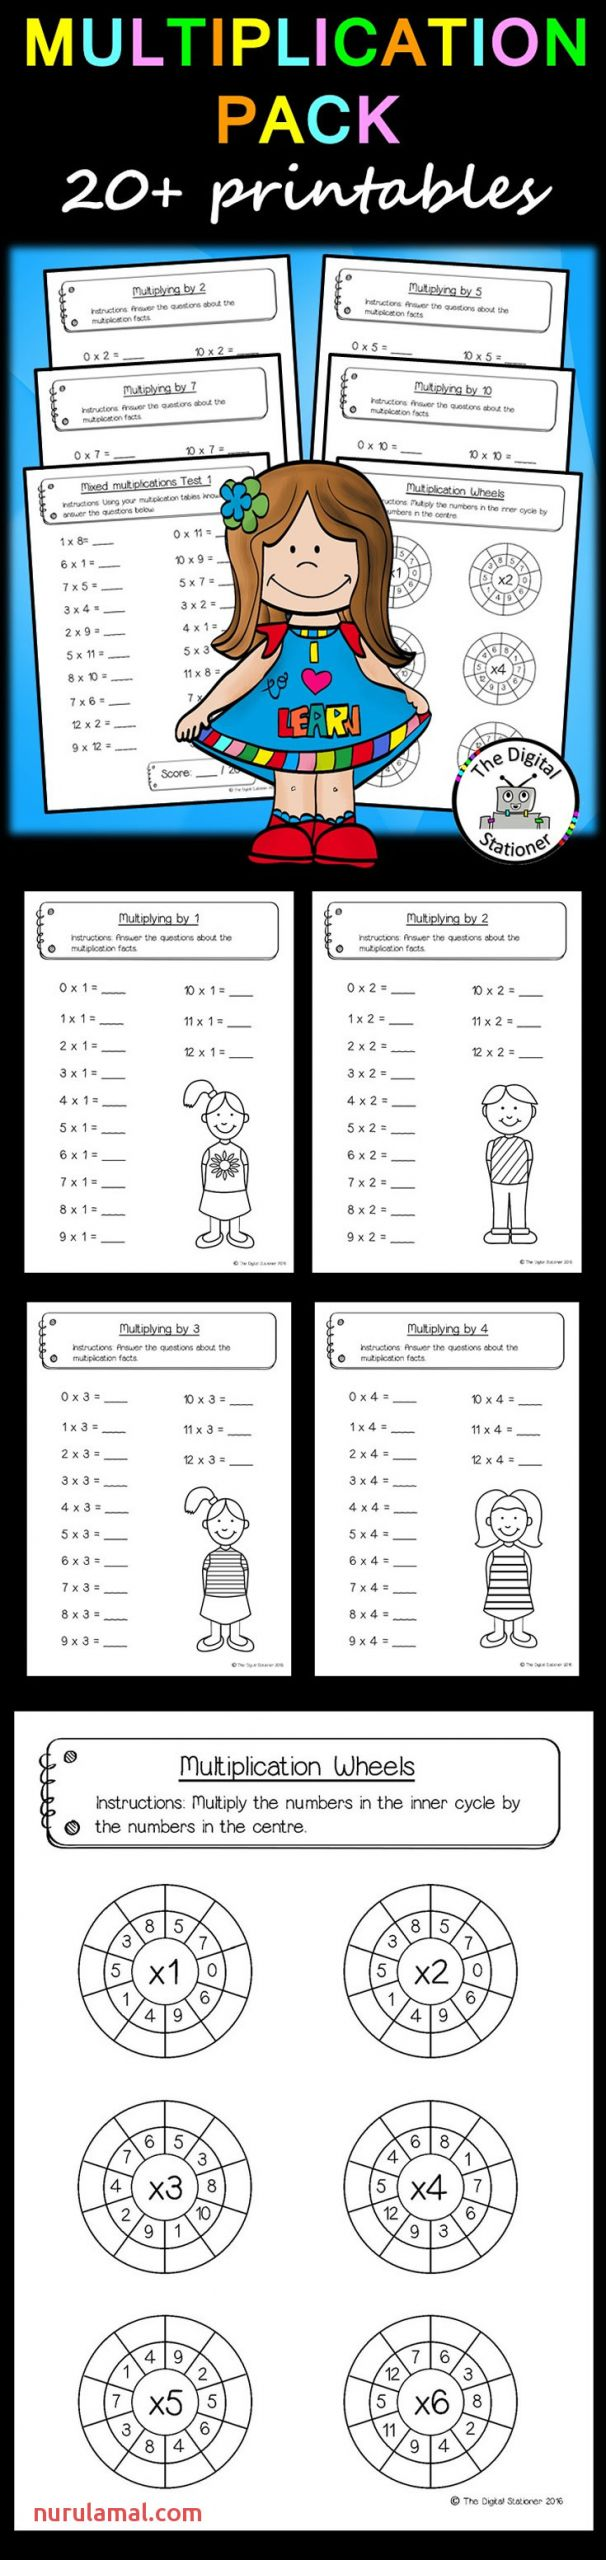 Multiplication Pack 12 X 12 20 Printables